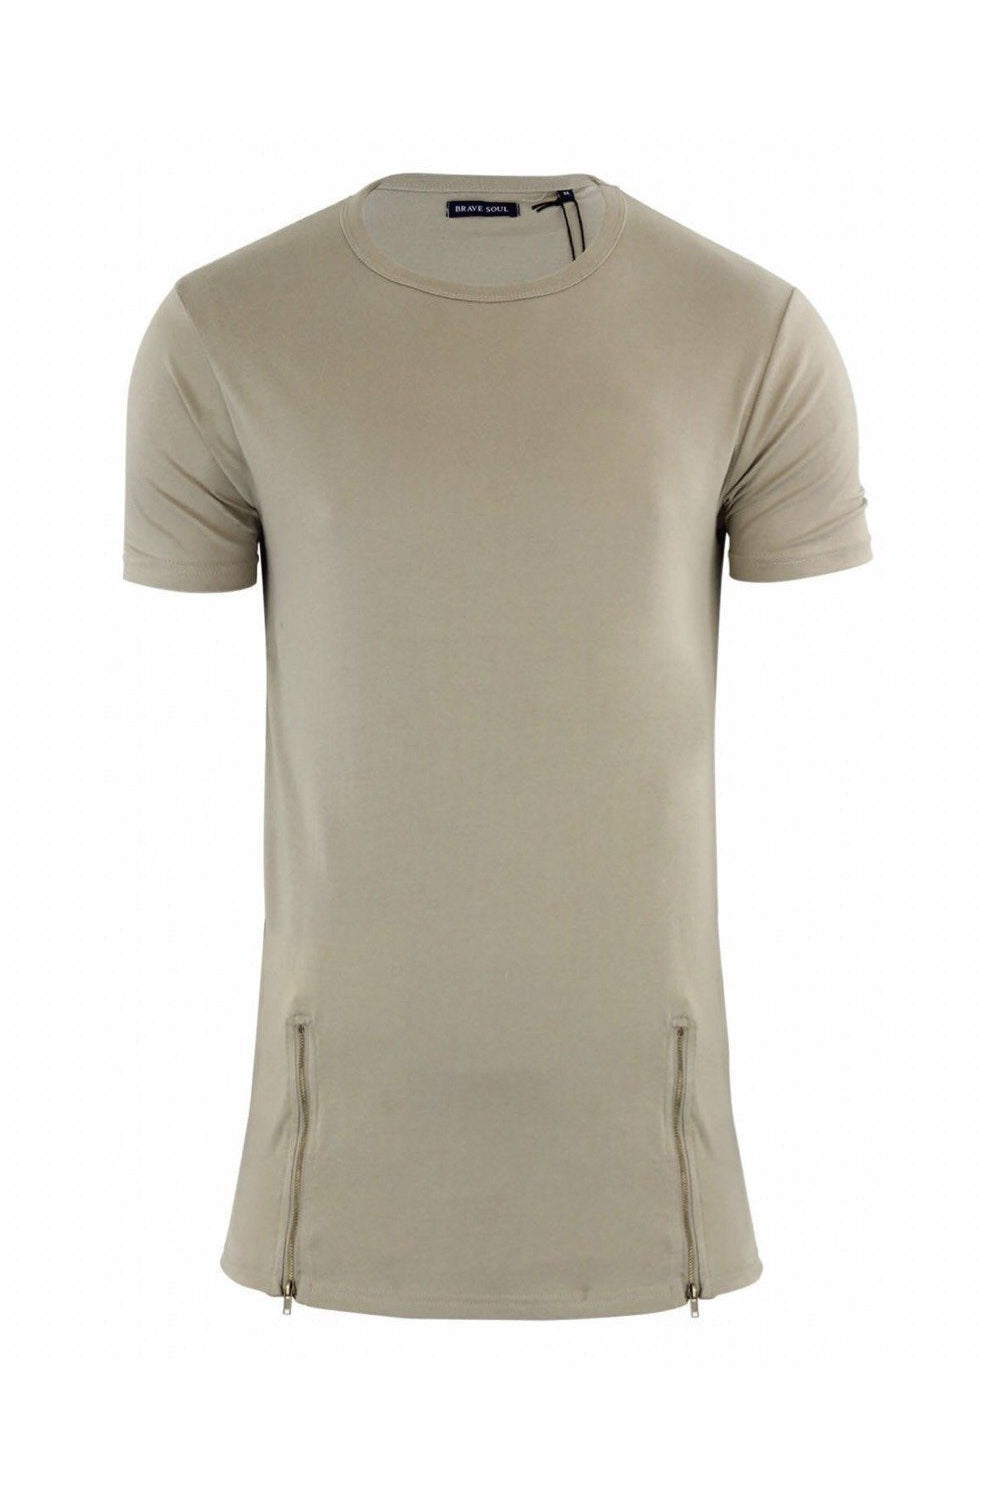 T-Shirts - Longline Zip T-Shirt Light Khaki